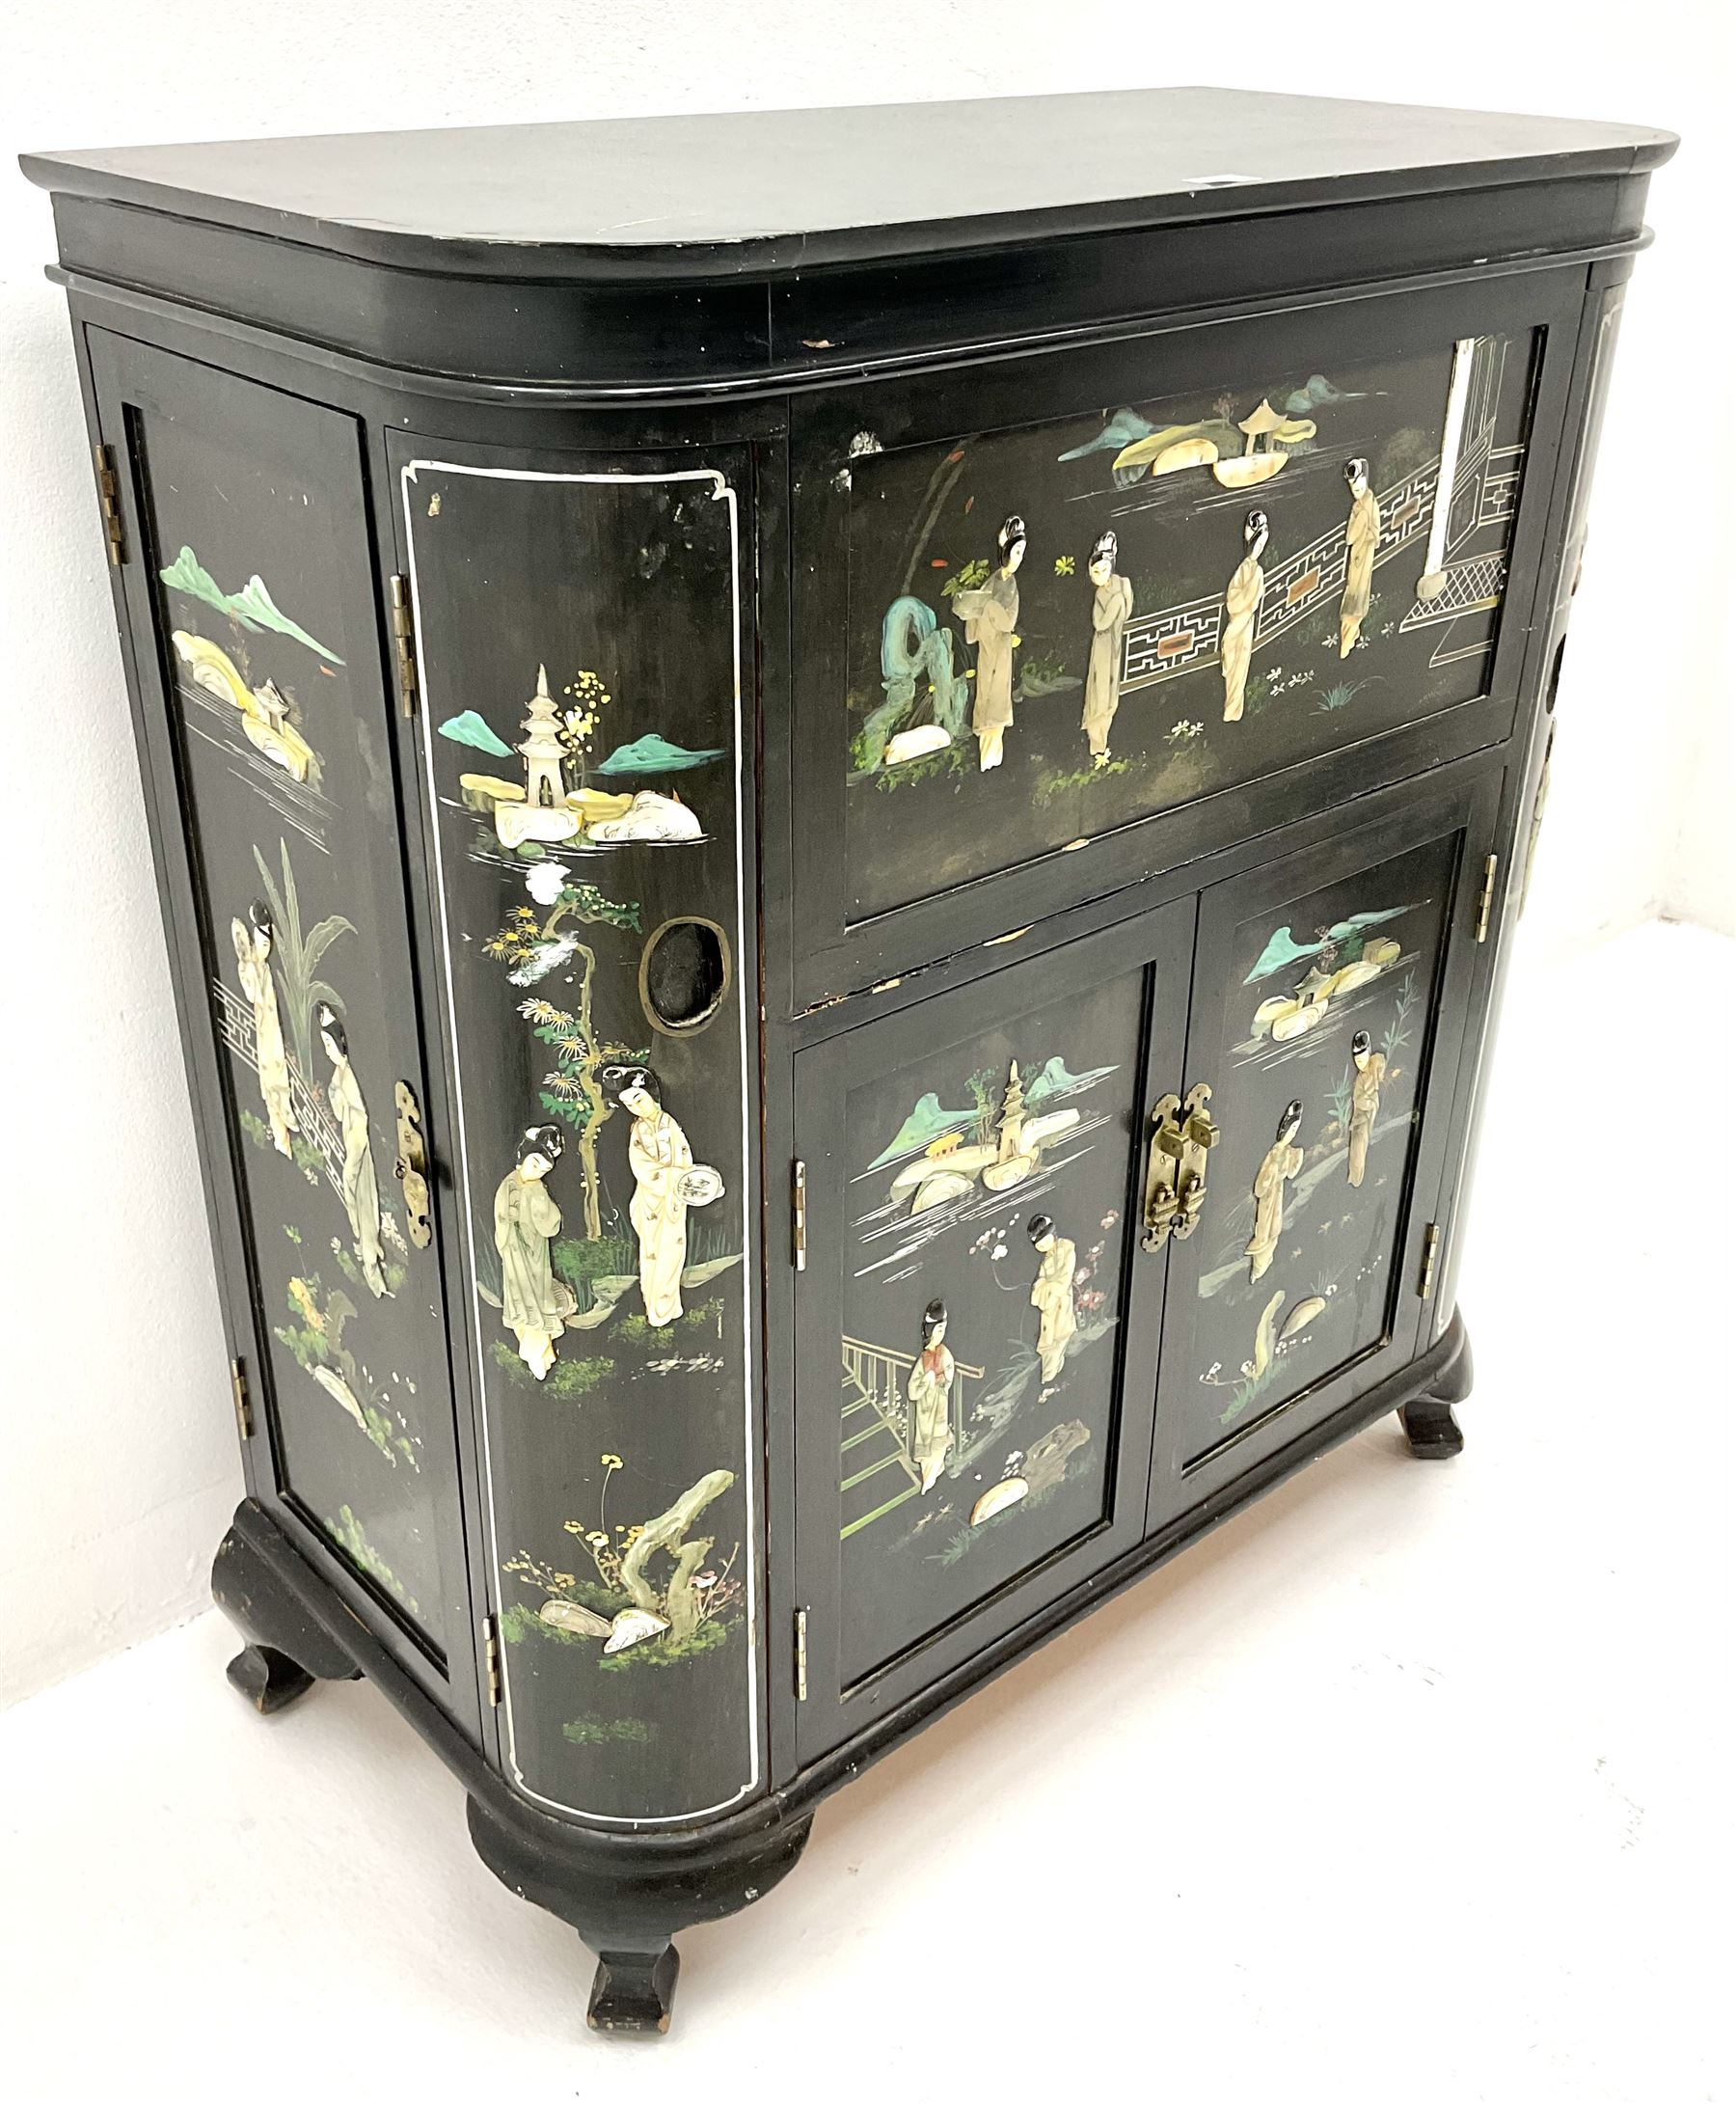 Hong Kong black lacquered cocktail cabinet with shibiyama style decoration of figures in a garden - Image 3 of 6